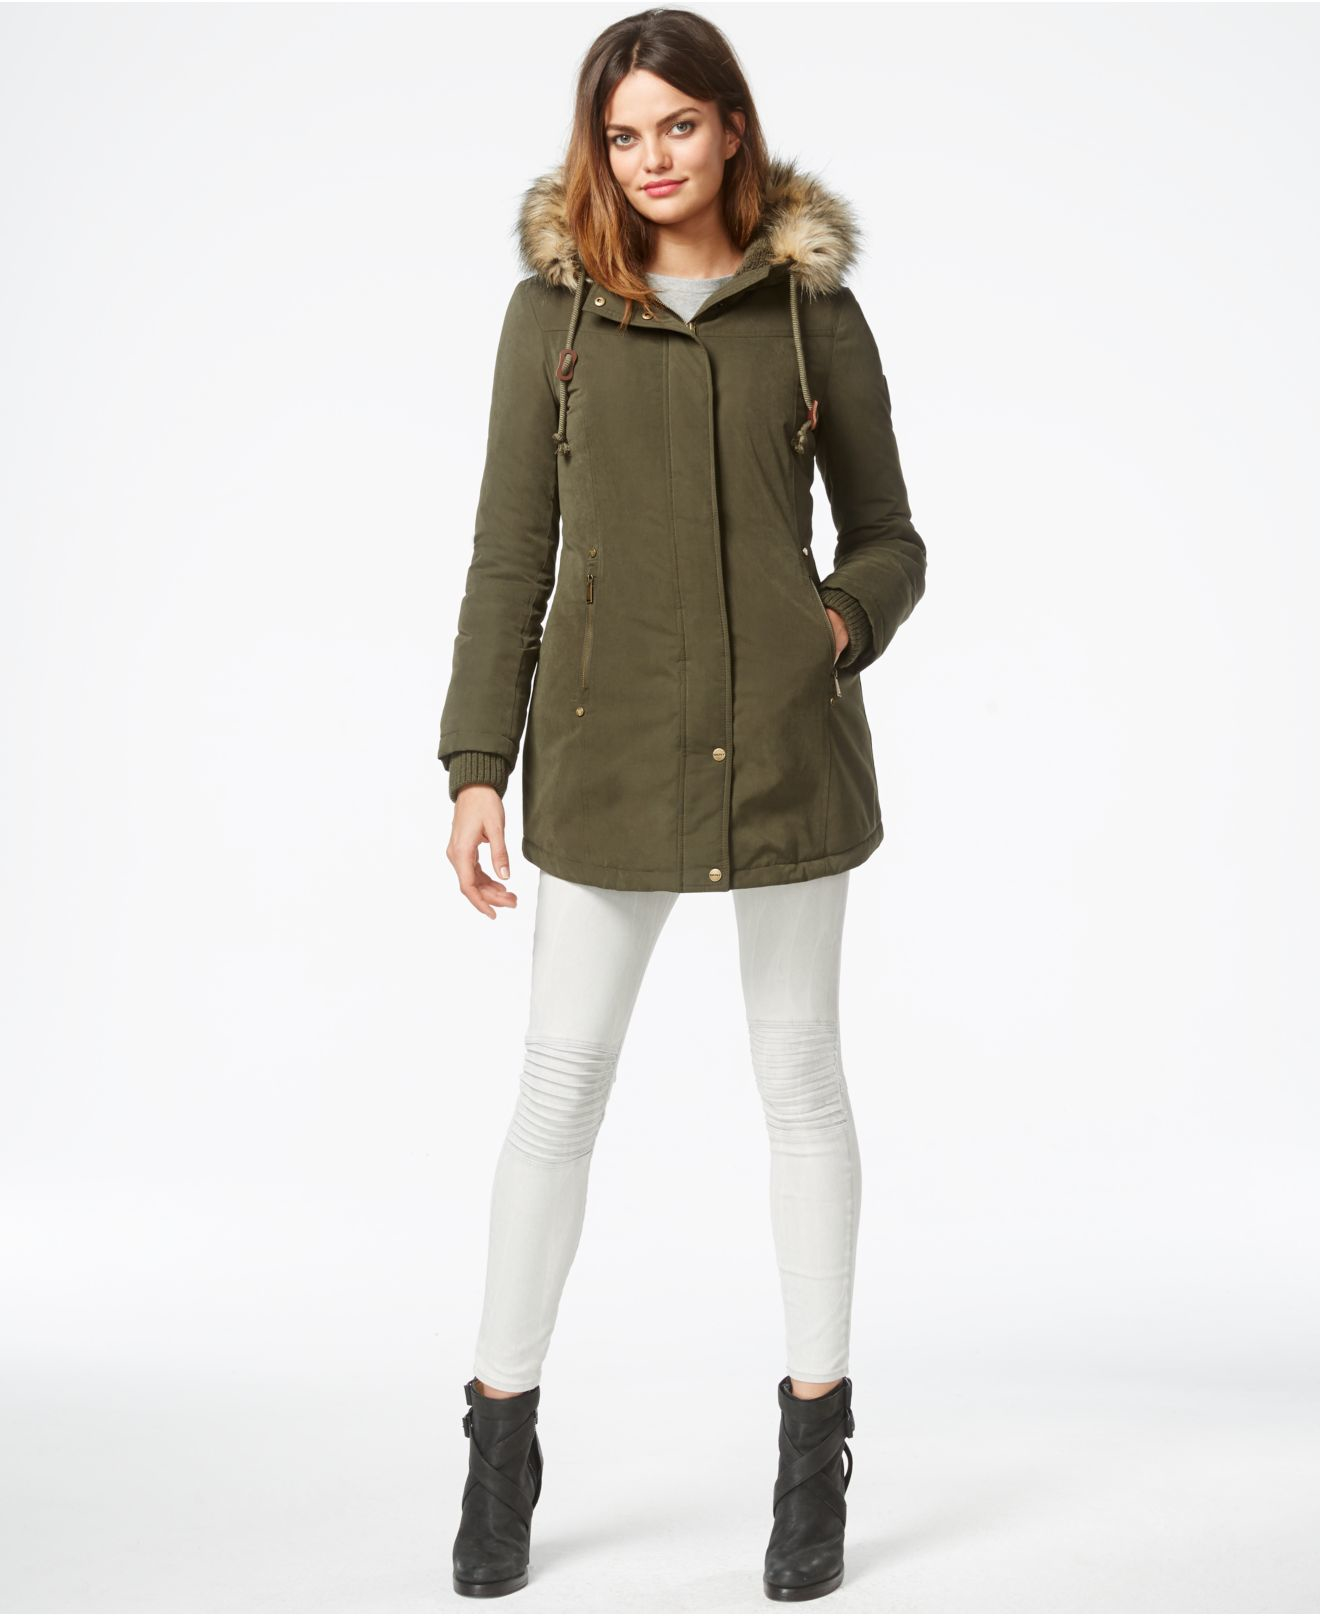 Dkny Faux-fur-trim Parka Jacket in Green | Lyst